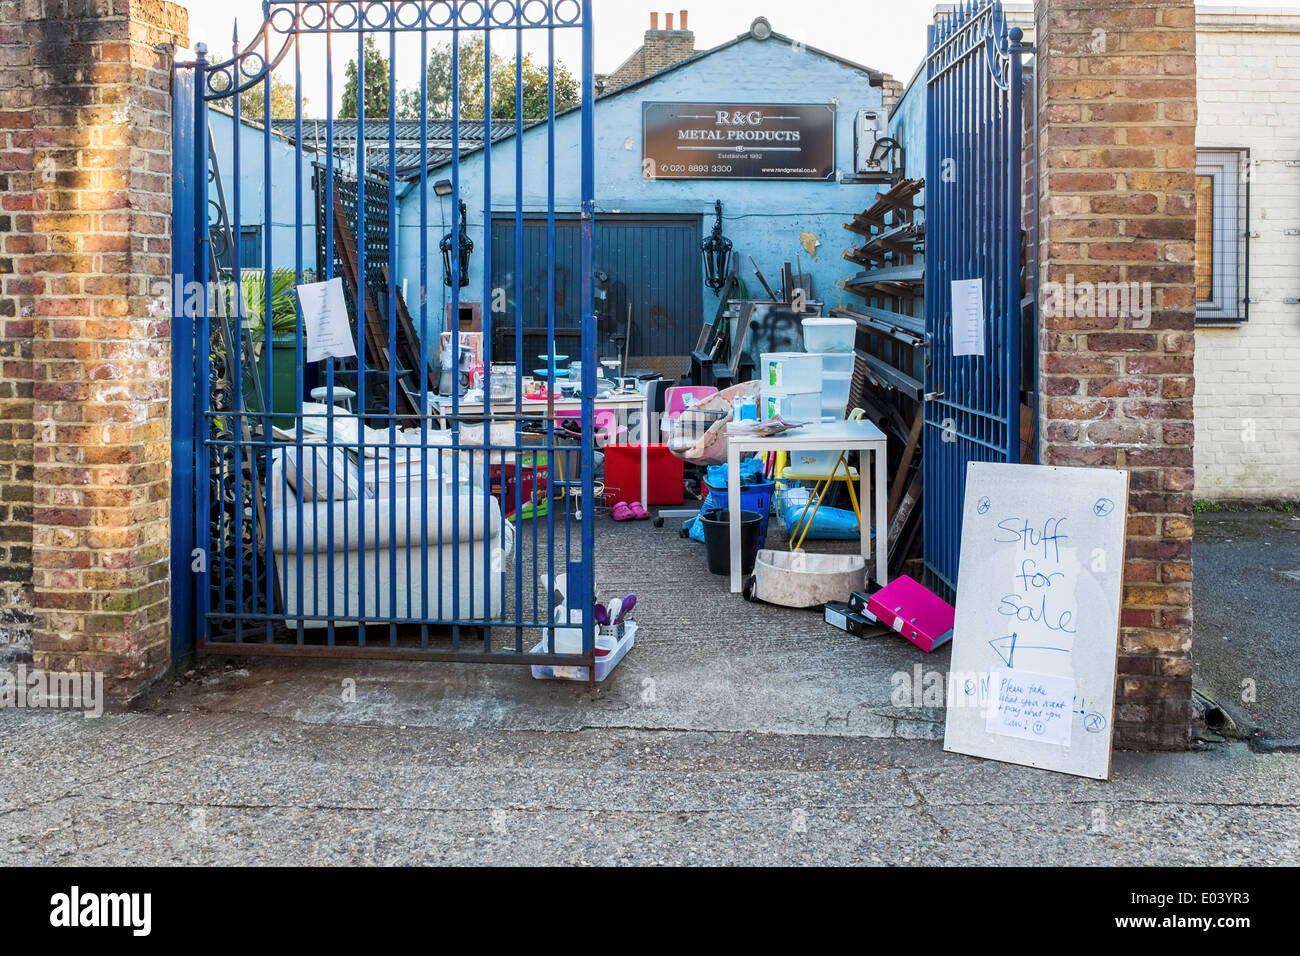 Yard sale - householder's old goods and possessions for sale at Twickenham business, Greater London, UK - Stock Image